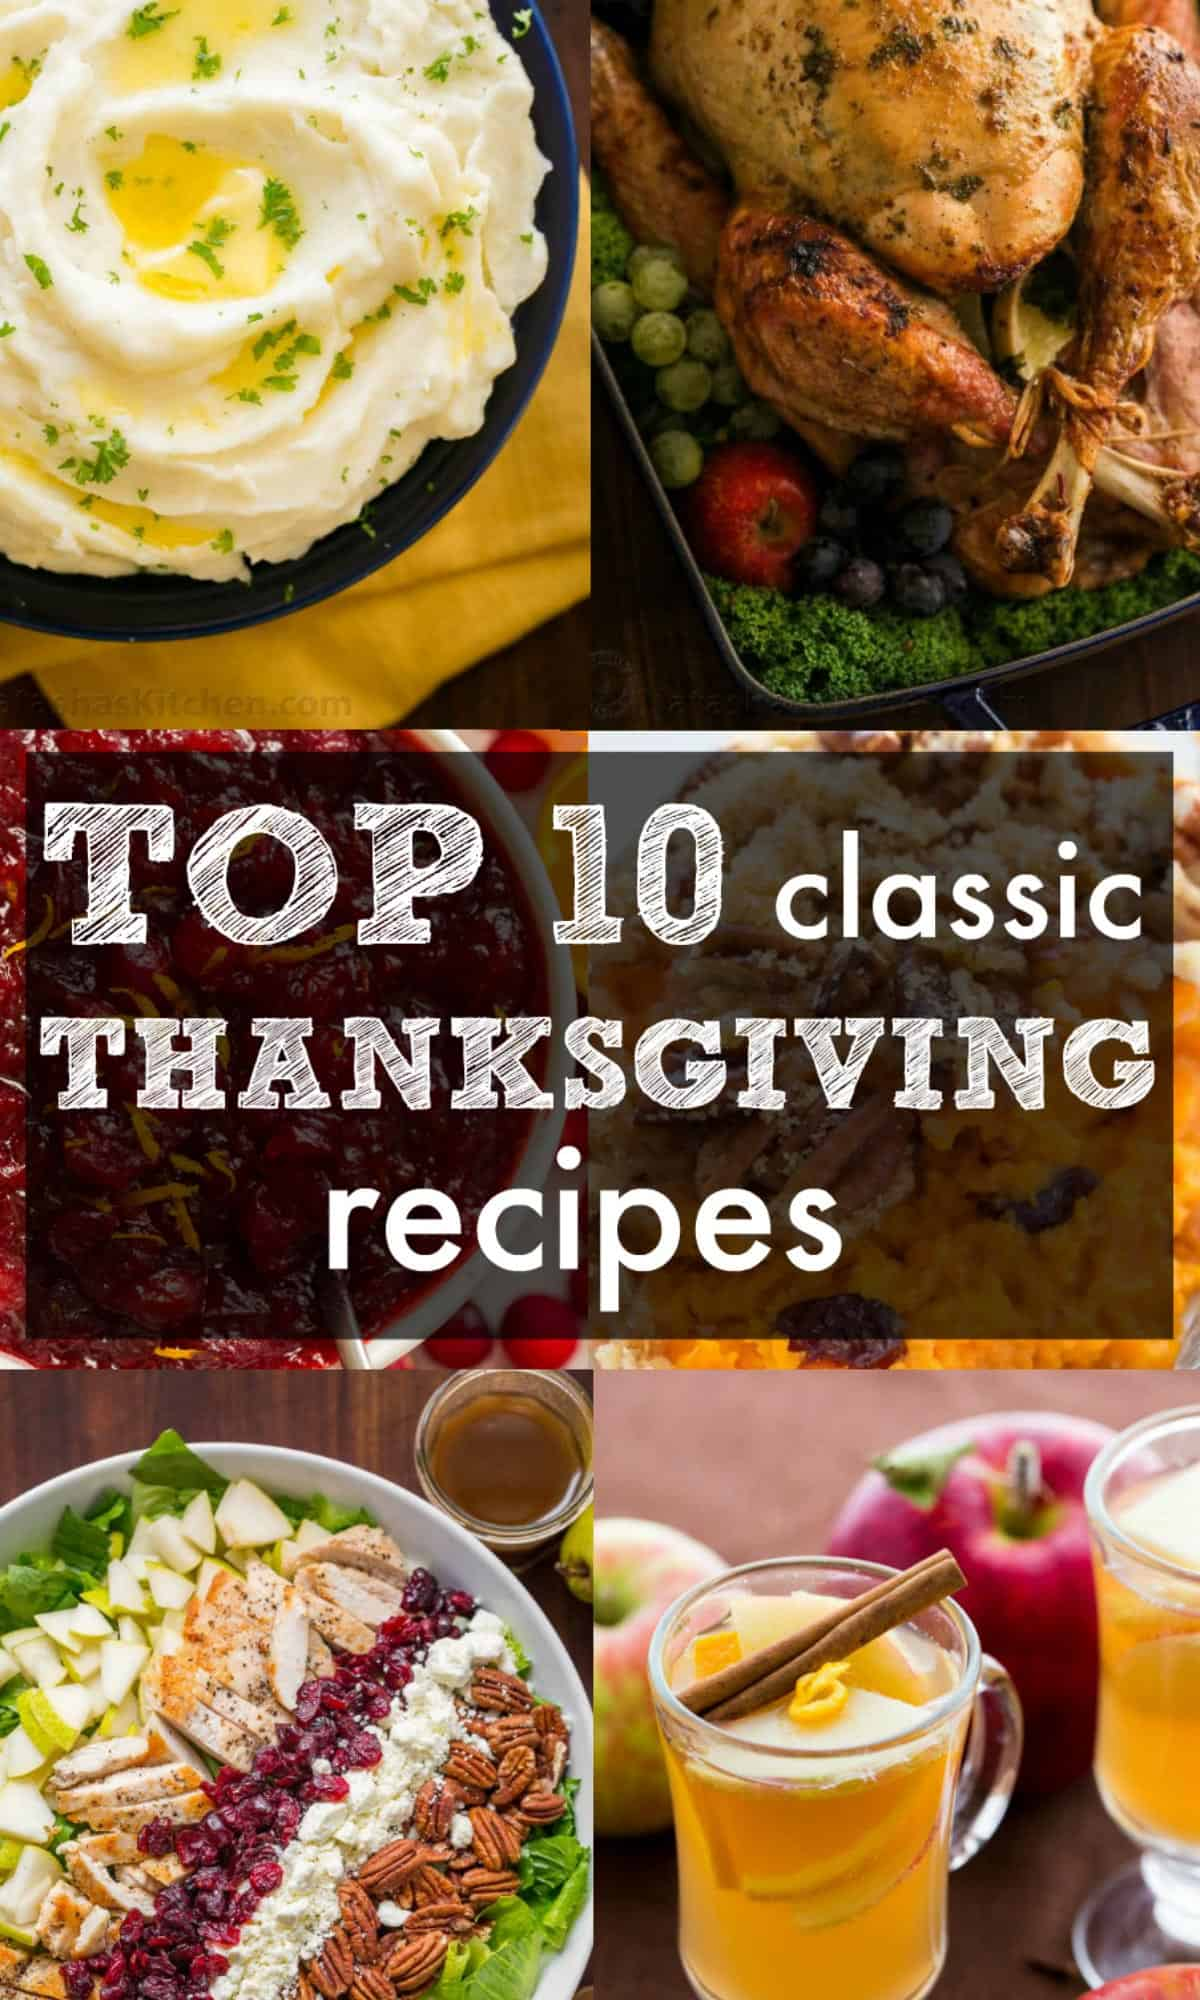 Our Top 10 Classic Thanksgiving Recipes